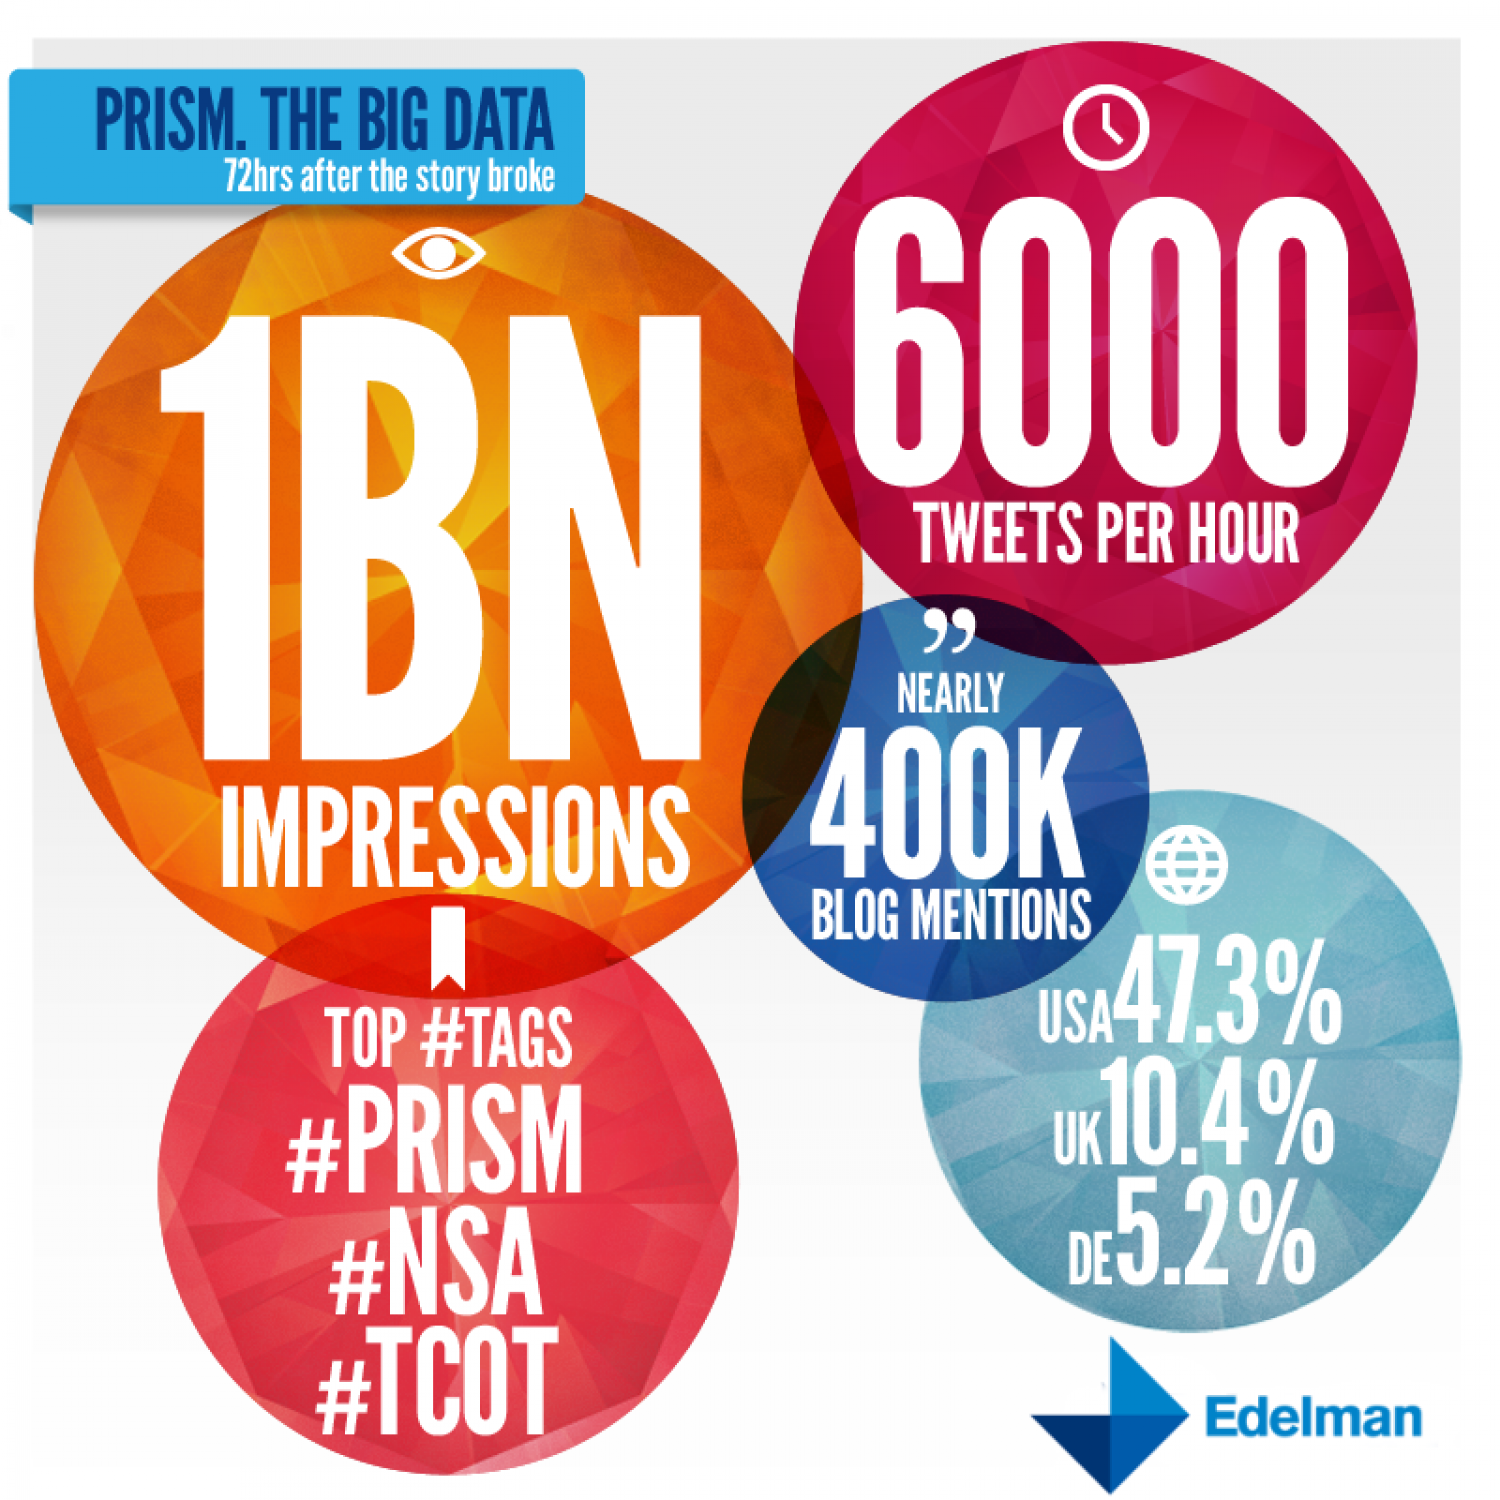 PRISM: The Big Data Infographic